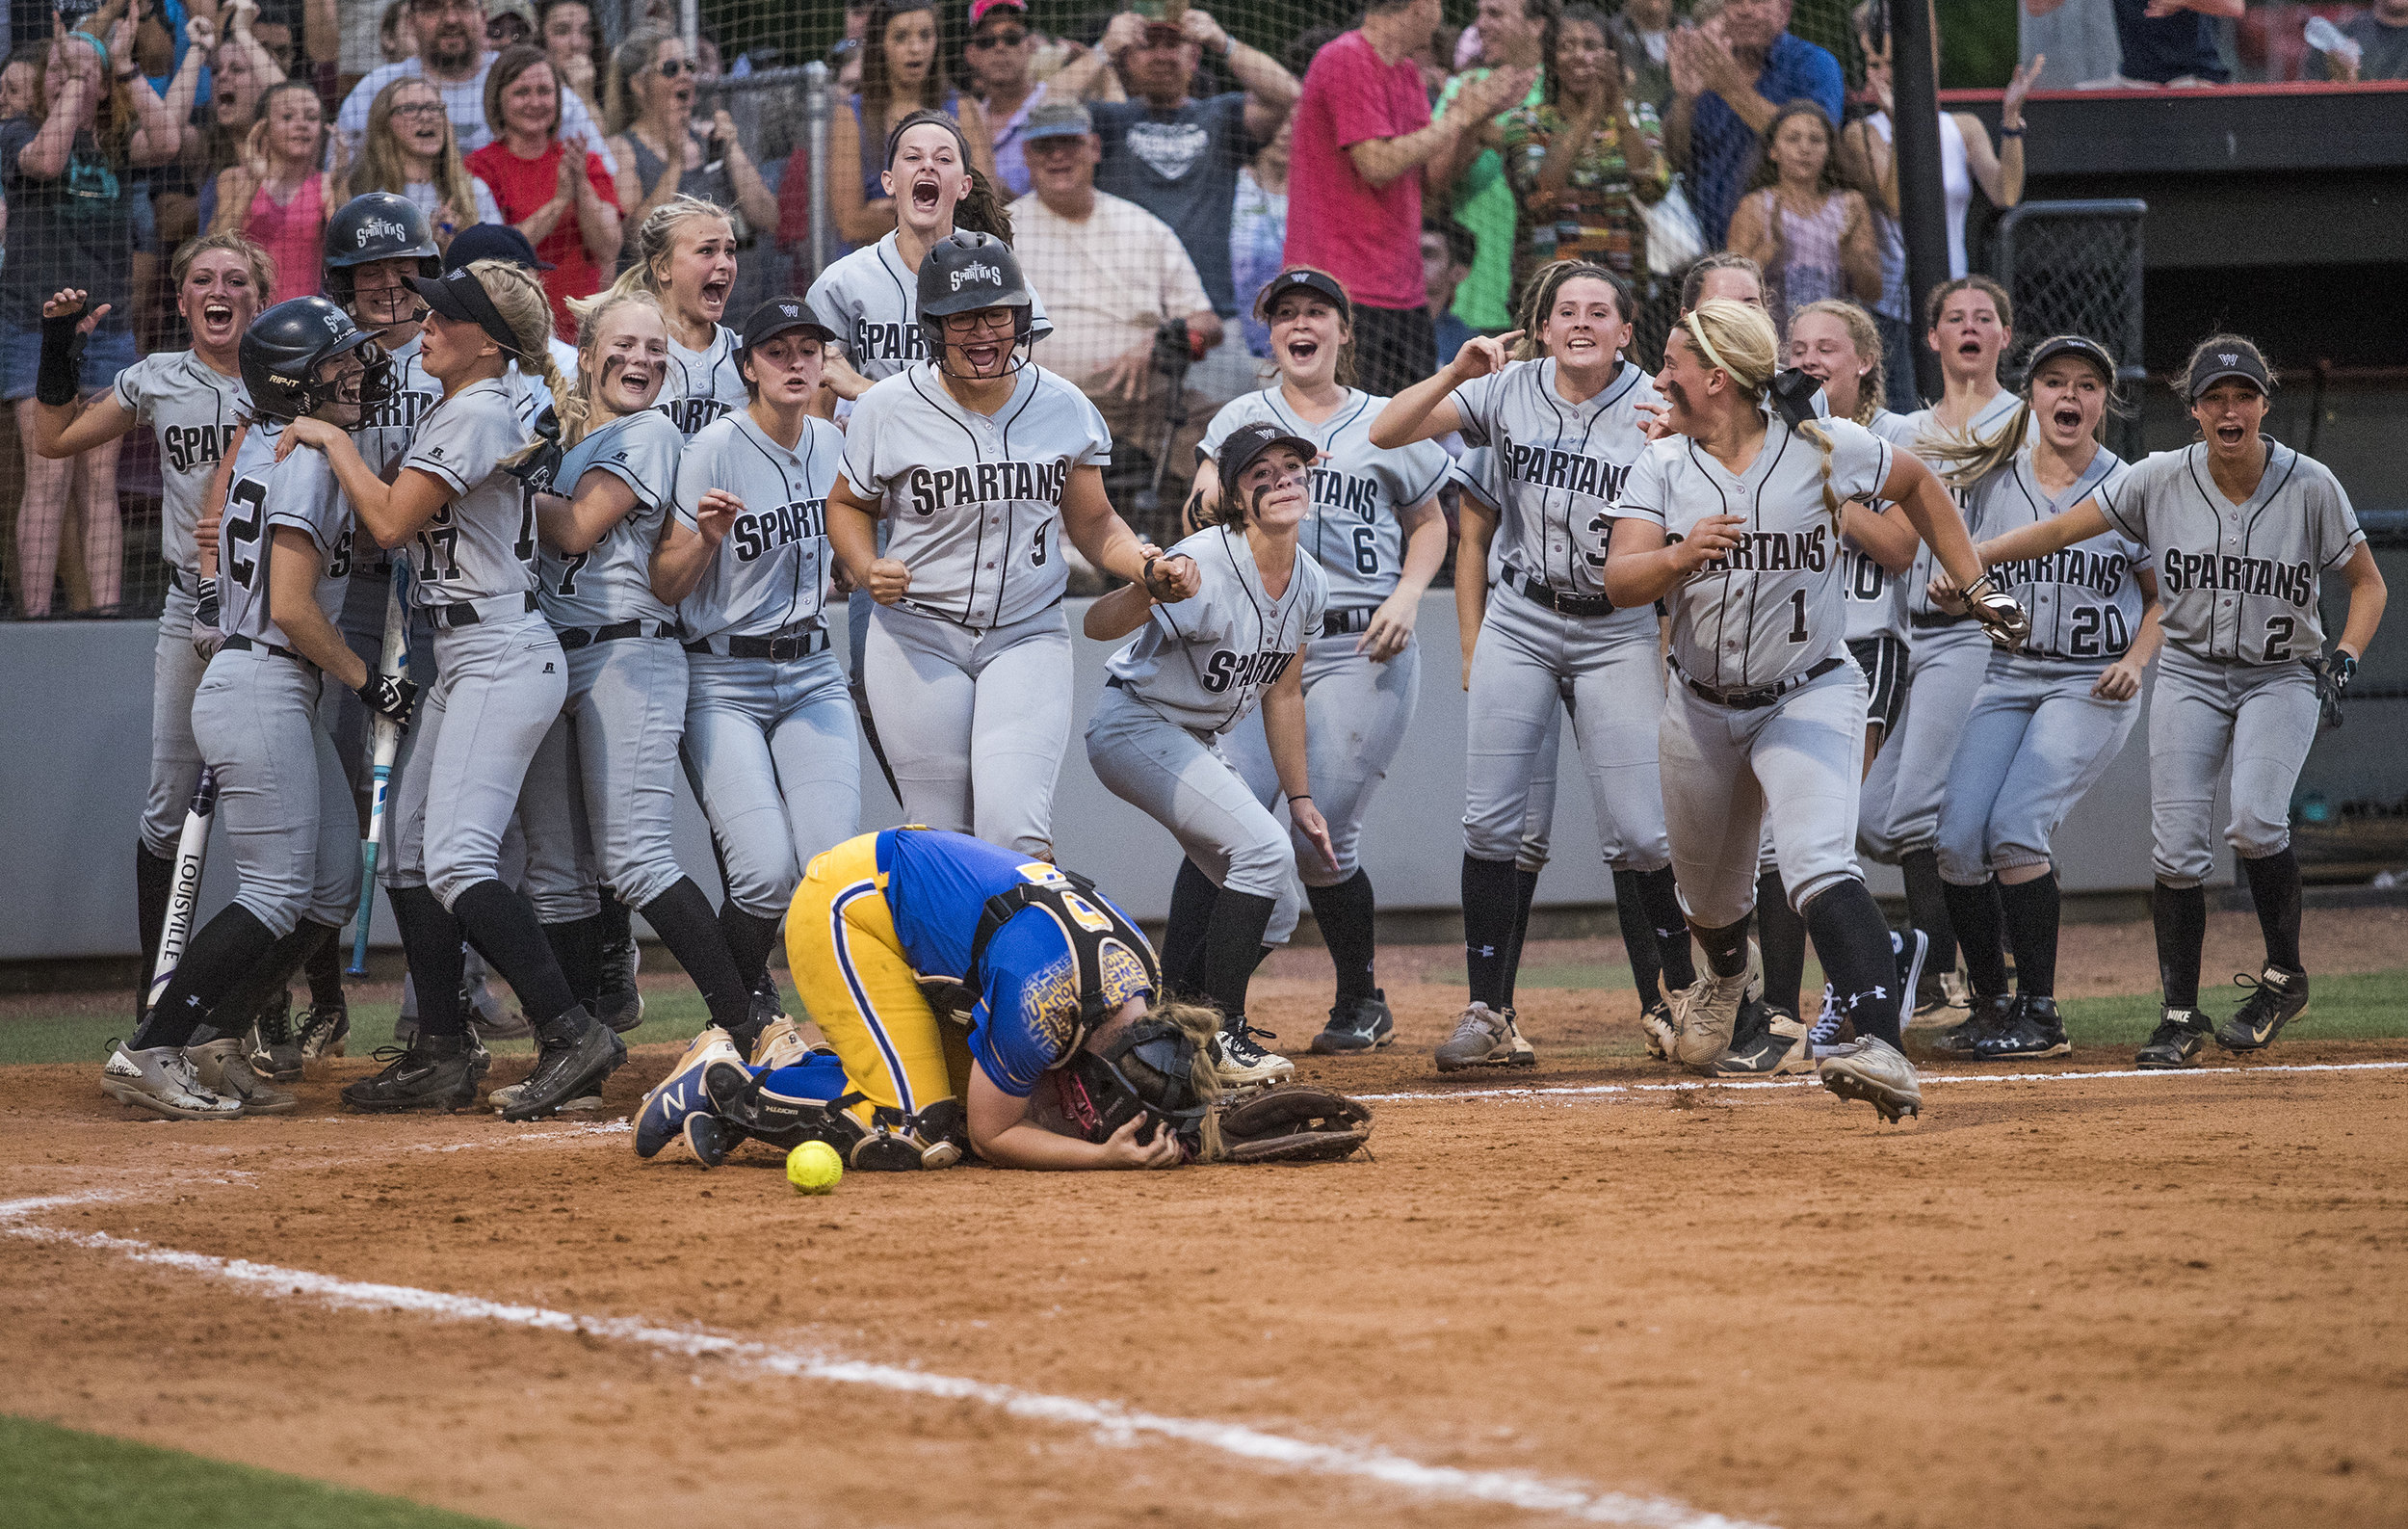 Warren East catcher Kendall Smith reacts as South Warren scores the game-winning run during the Region 4 championship on Thursday, June 1, 2017, at the WKU Softball Complex.